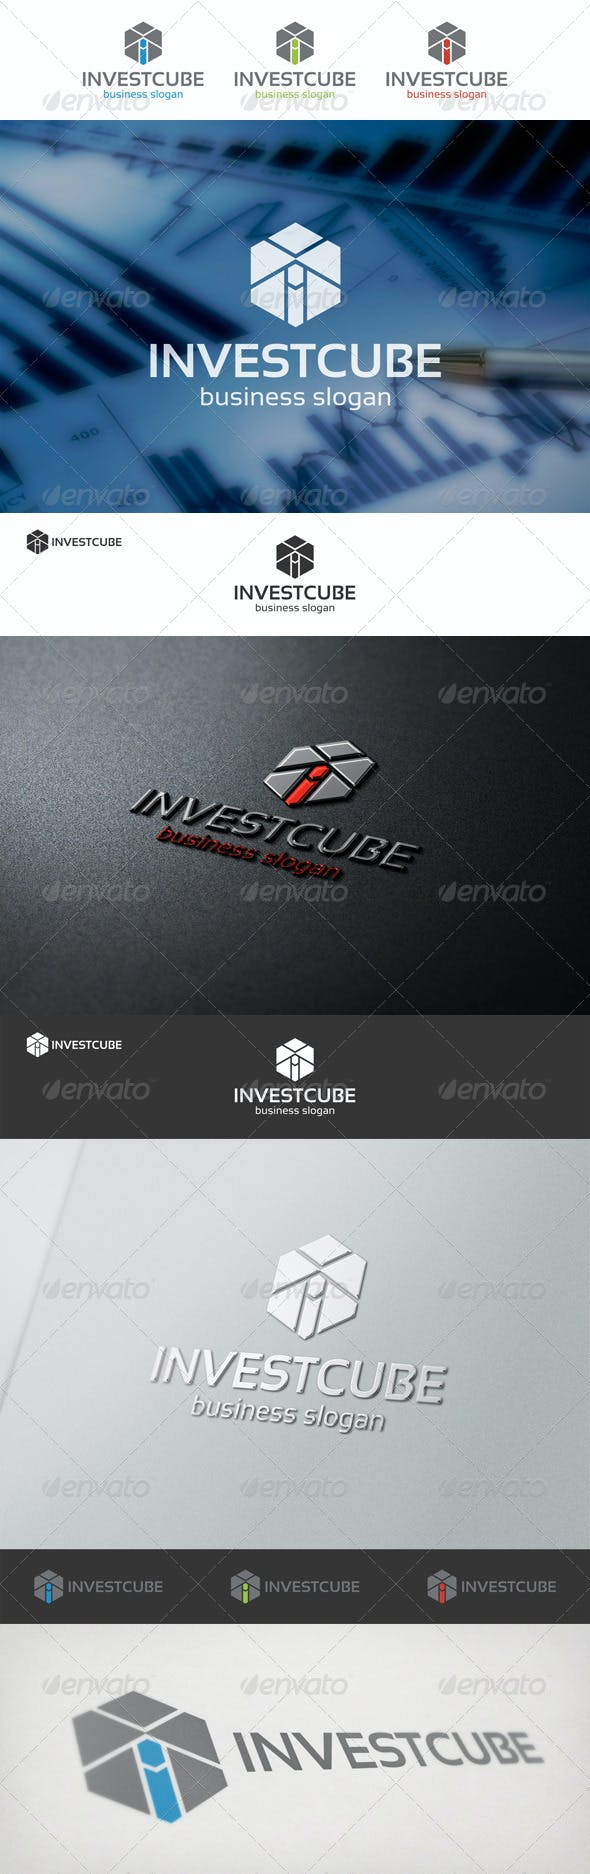 invest cube logo template by djjeep graphicriver